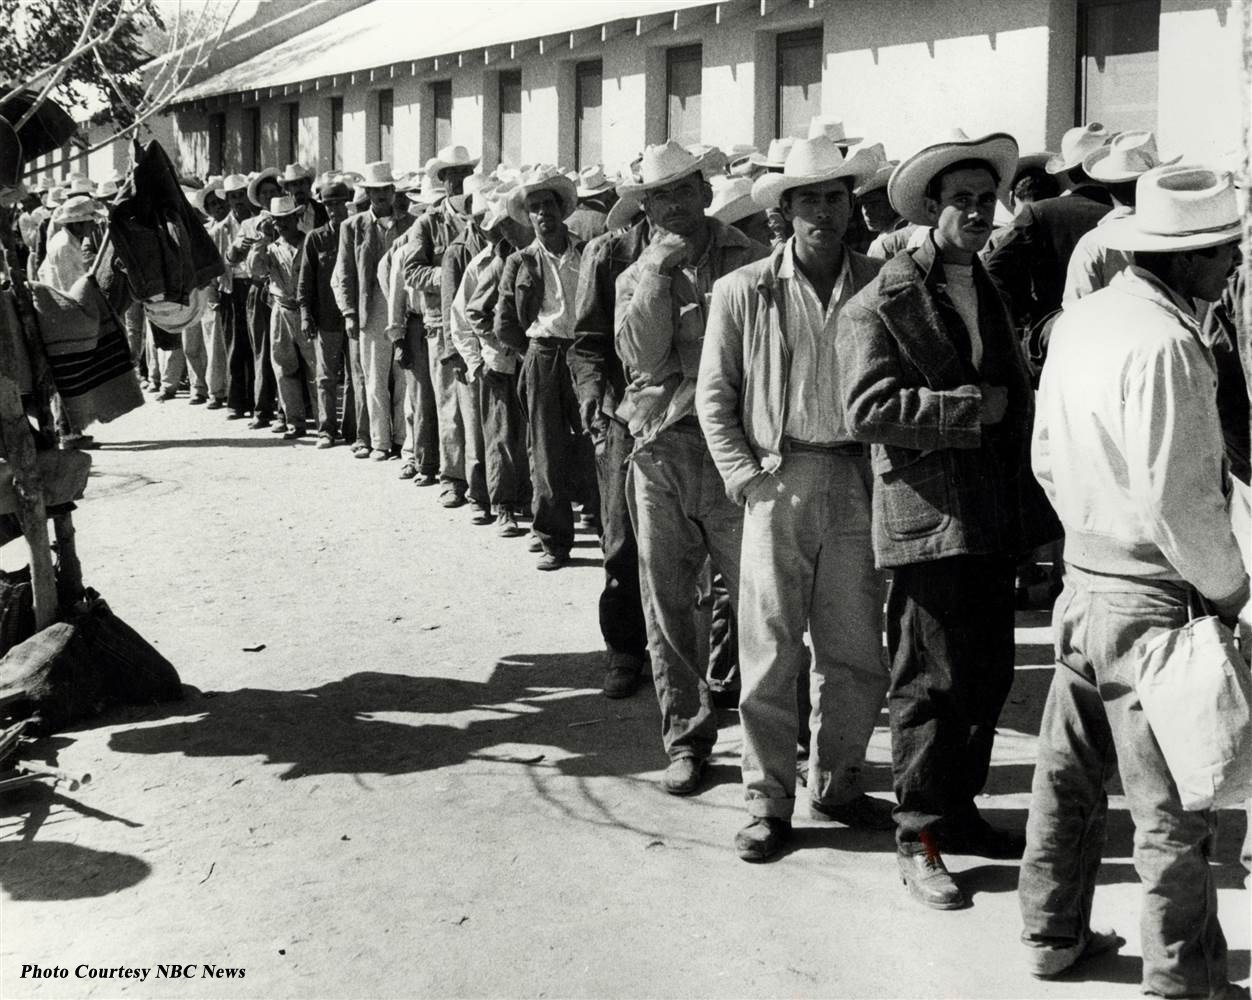 Workers waiting in line to be contracted at a farm reception center.